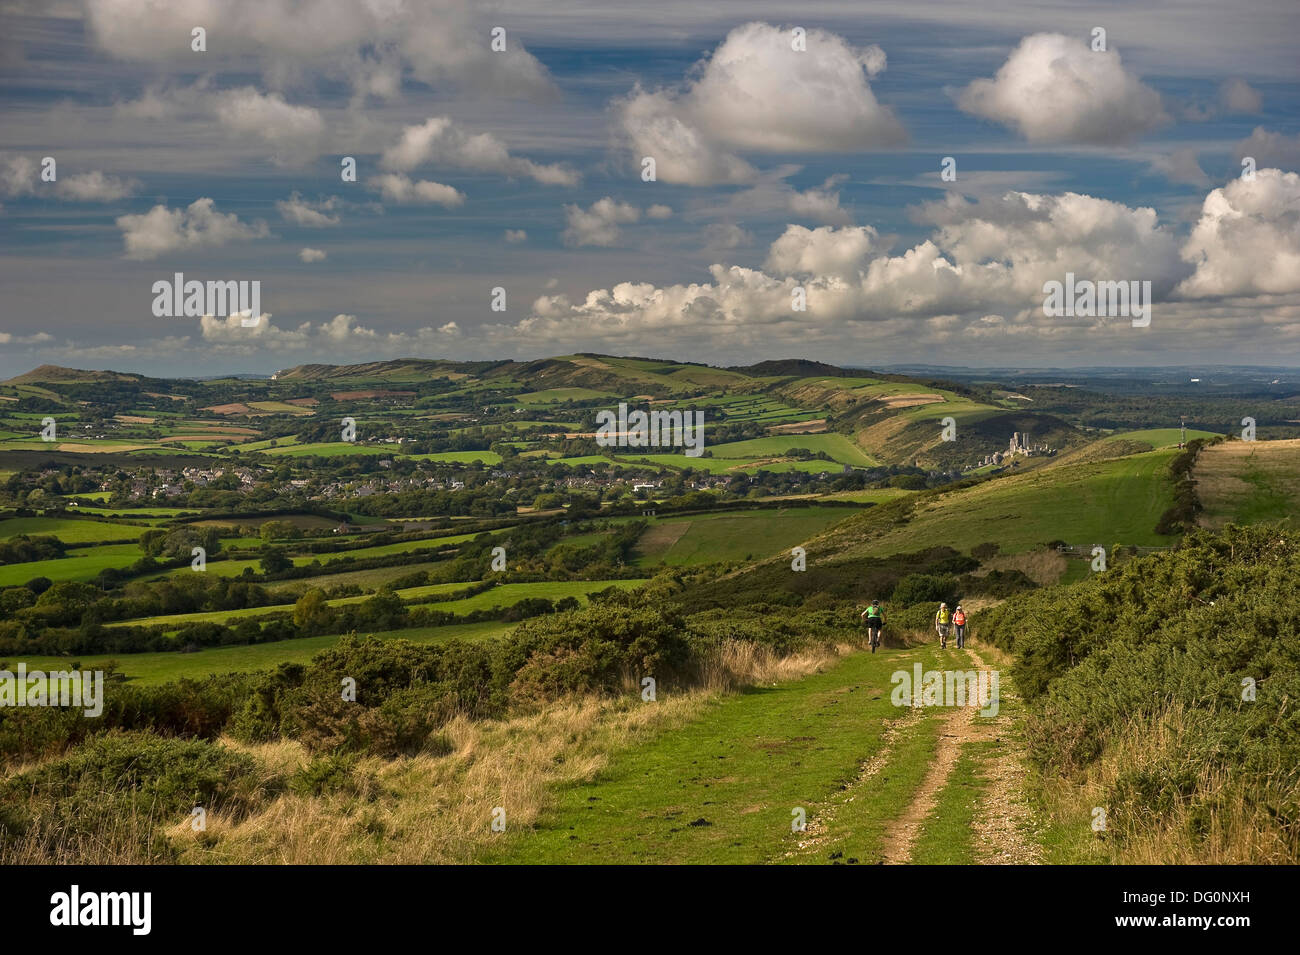 Cycling and walking in the Purbeck Hills, Dorset, UK - Stock Image